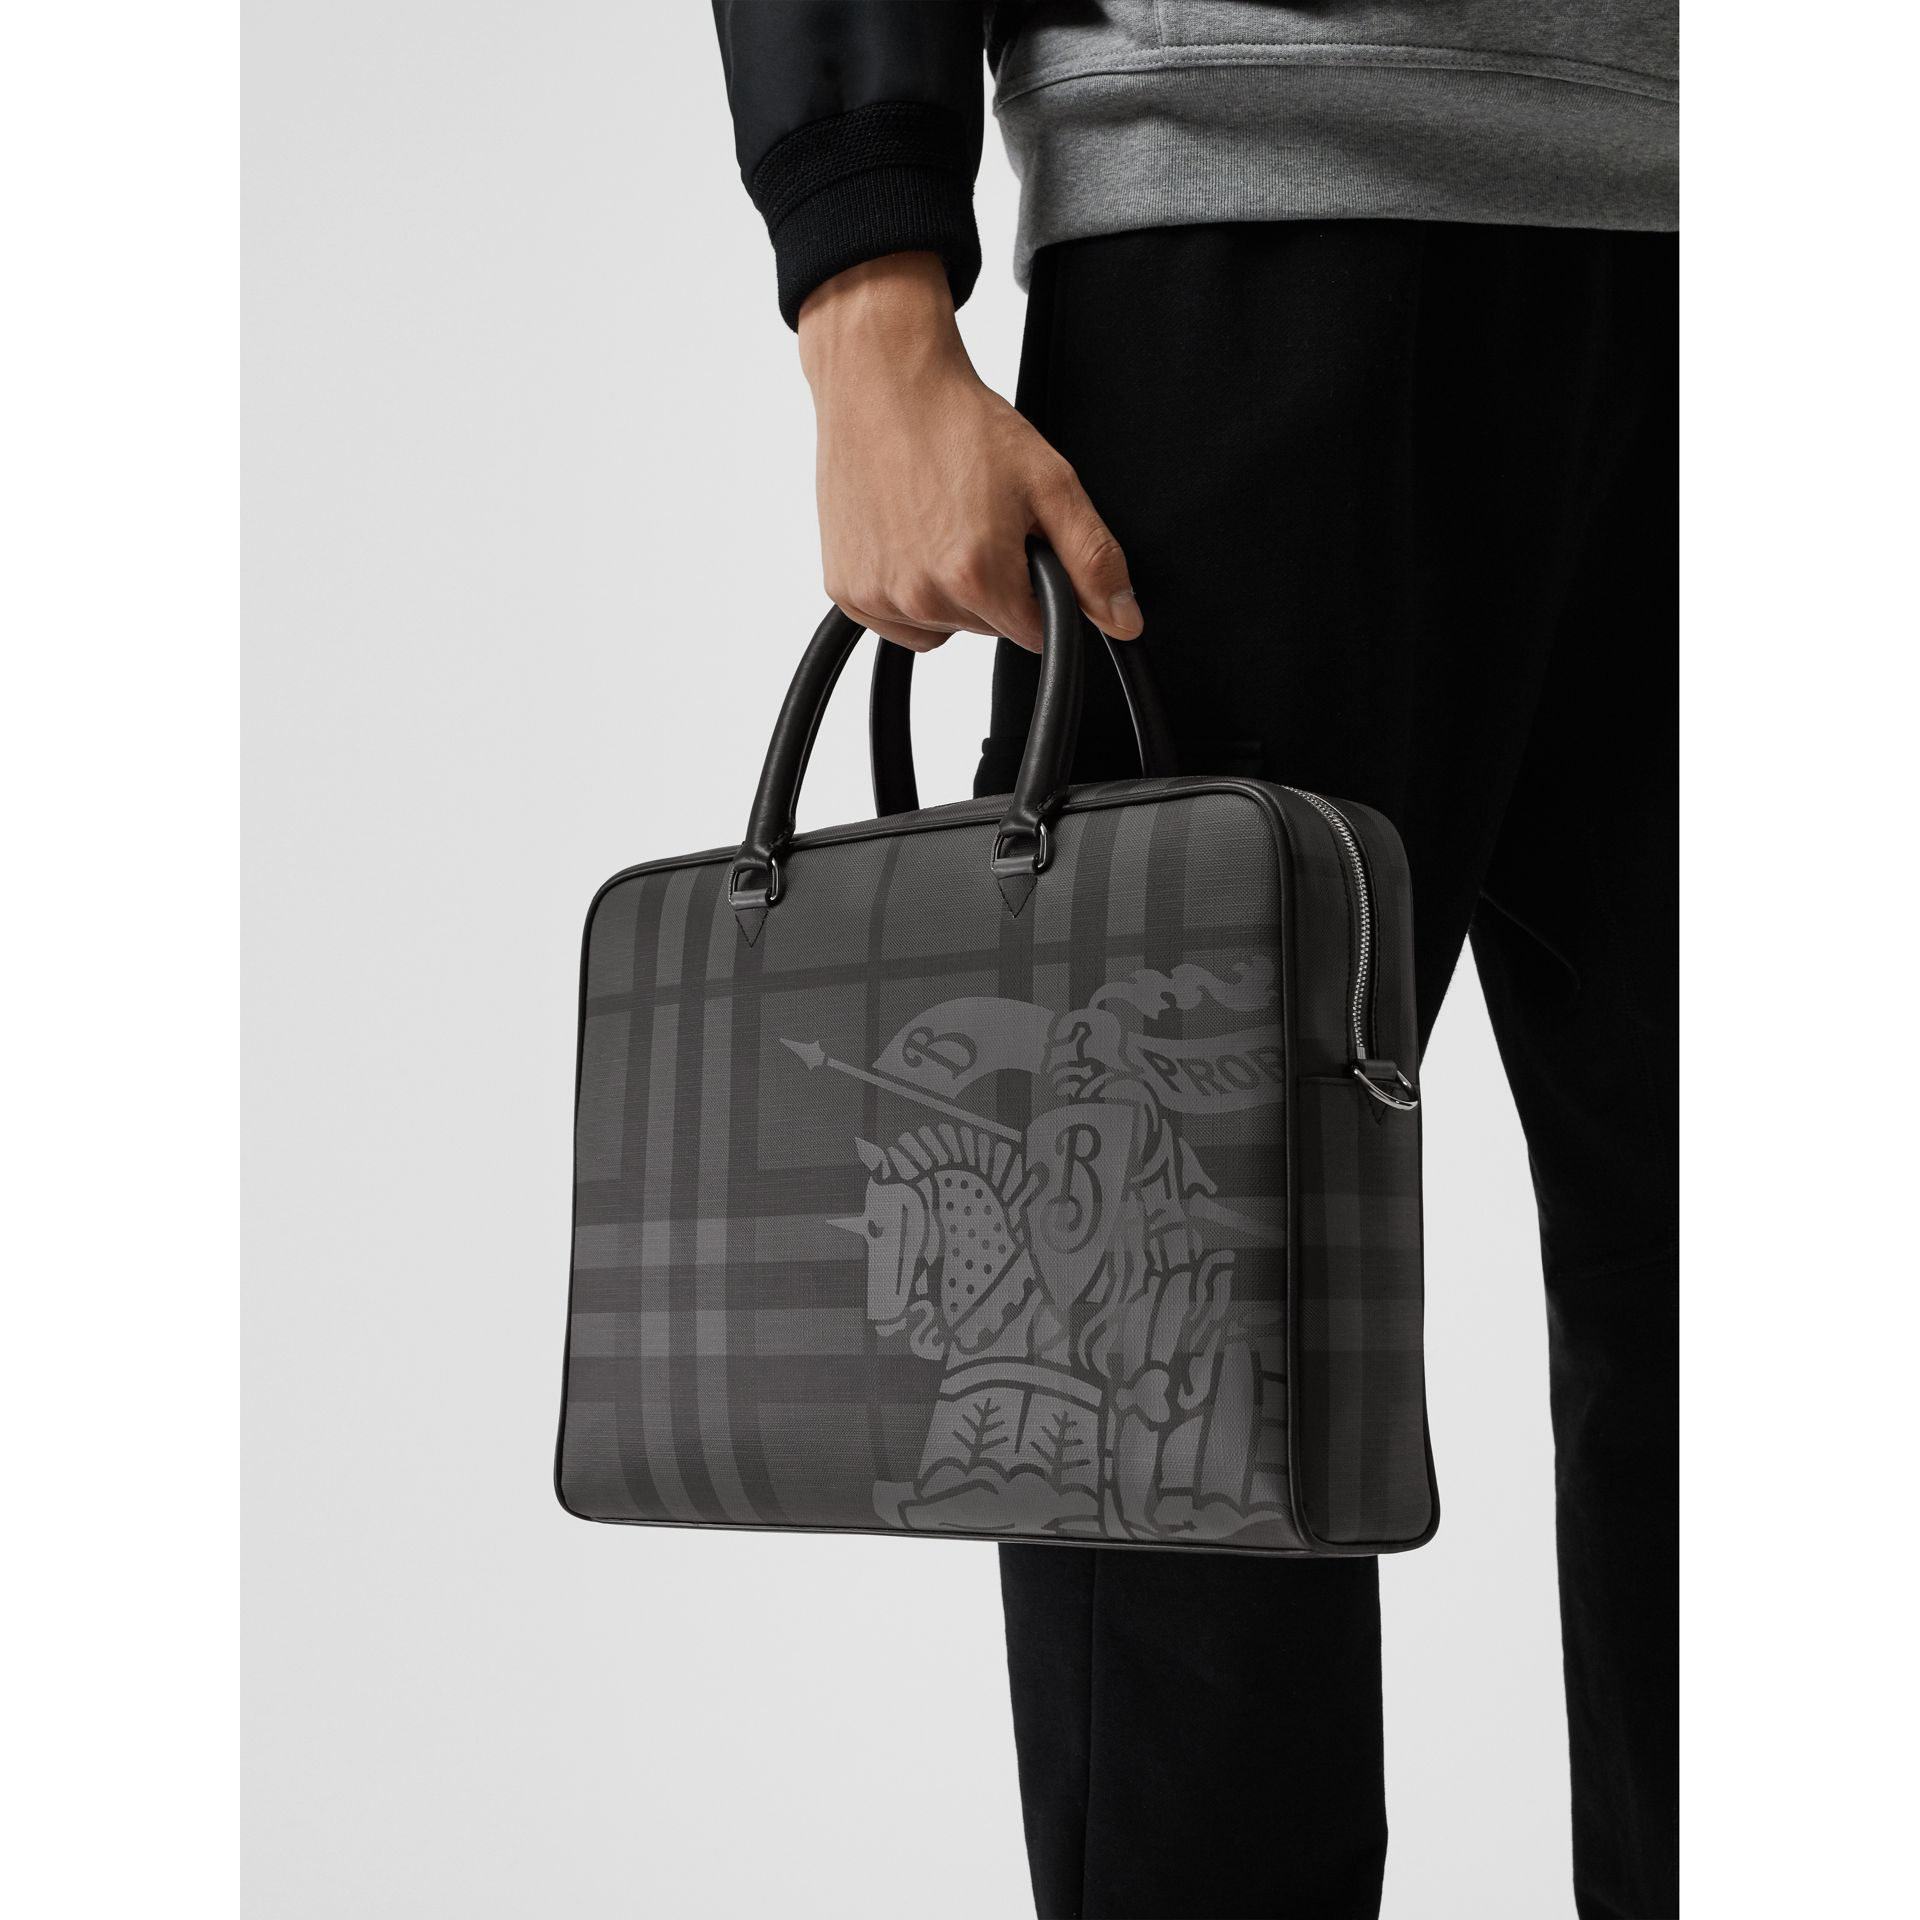 EKD London Check and Leather Briefcase in Charcoal/black - Men | Burberry Australia - gallery image 3